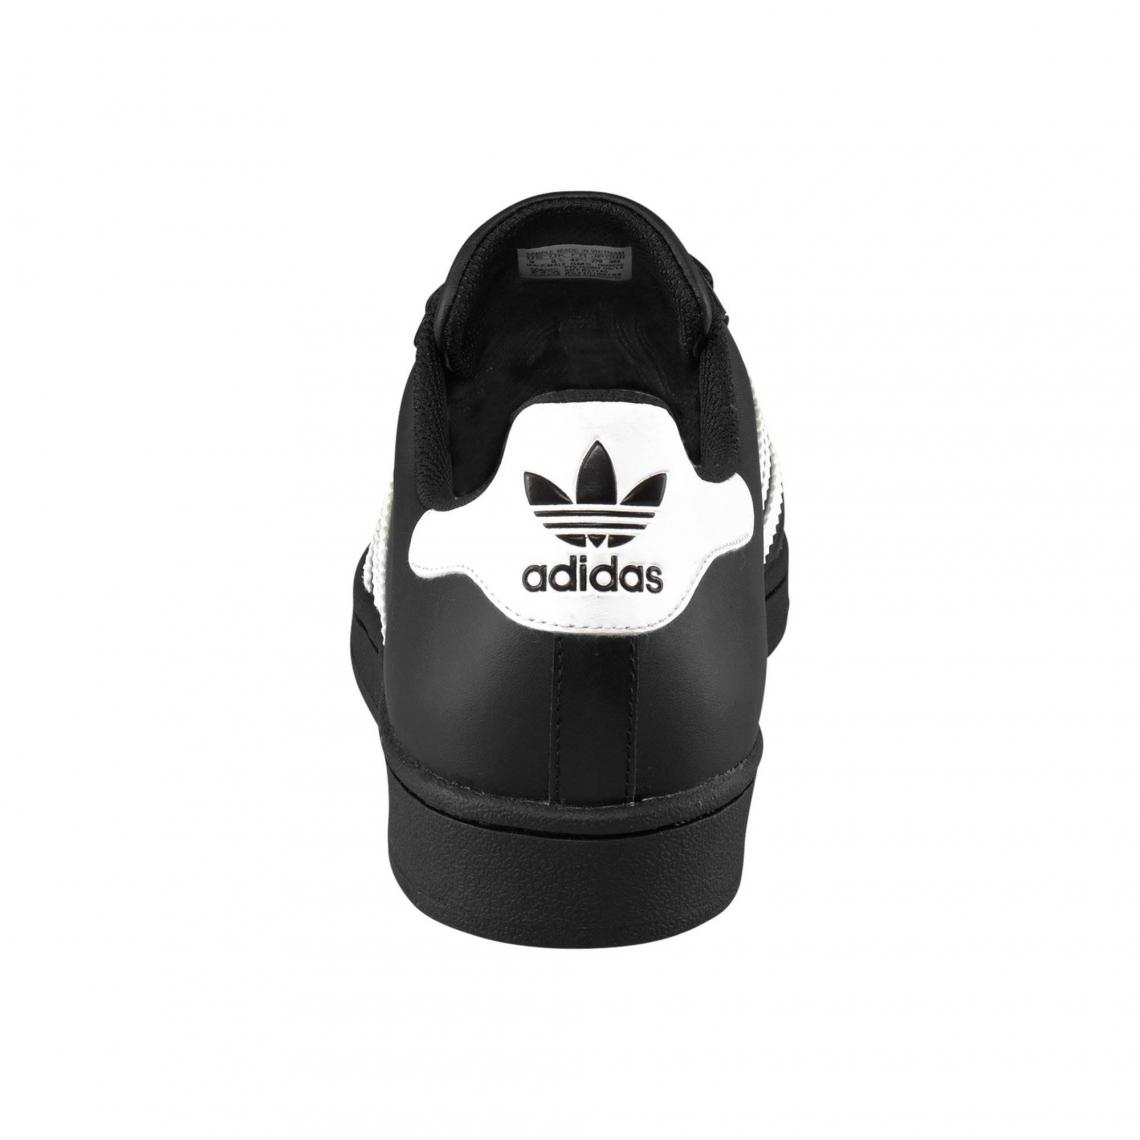 Tennis adidas Originals Superstar East River pour homme - Noir Adidas  Originals f9743d9fce24